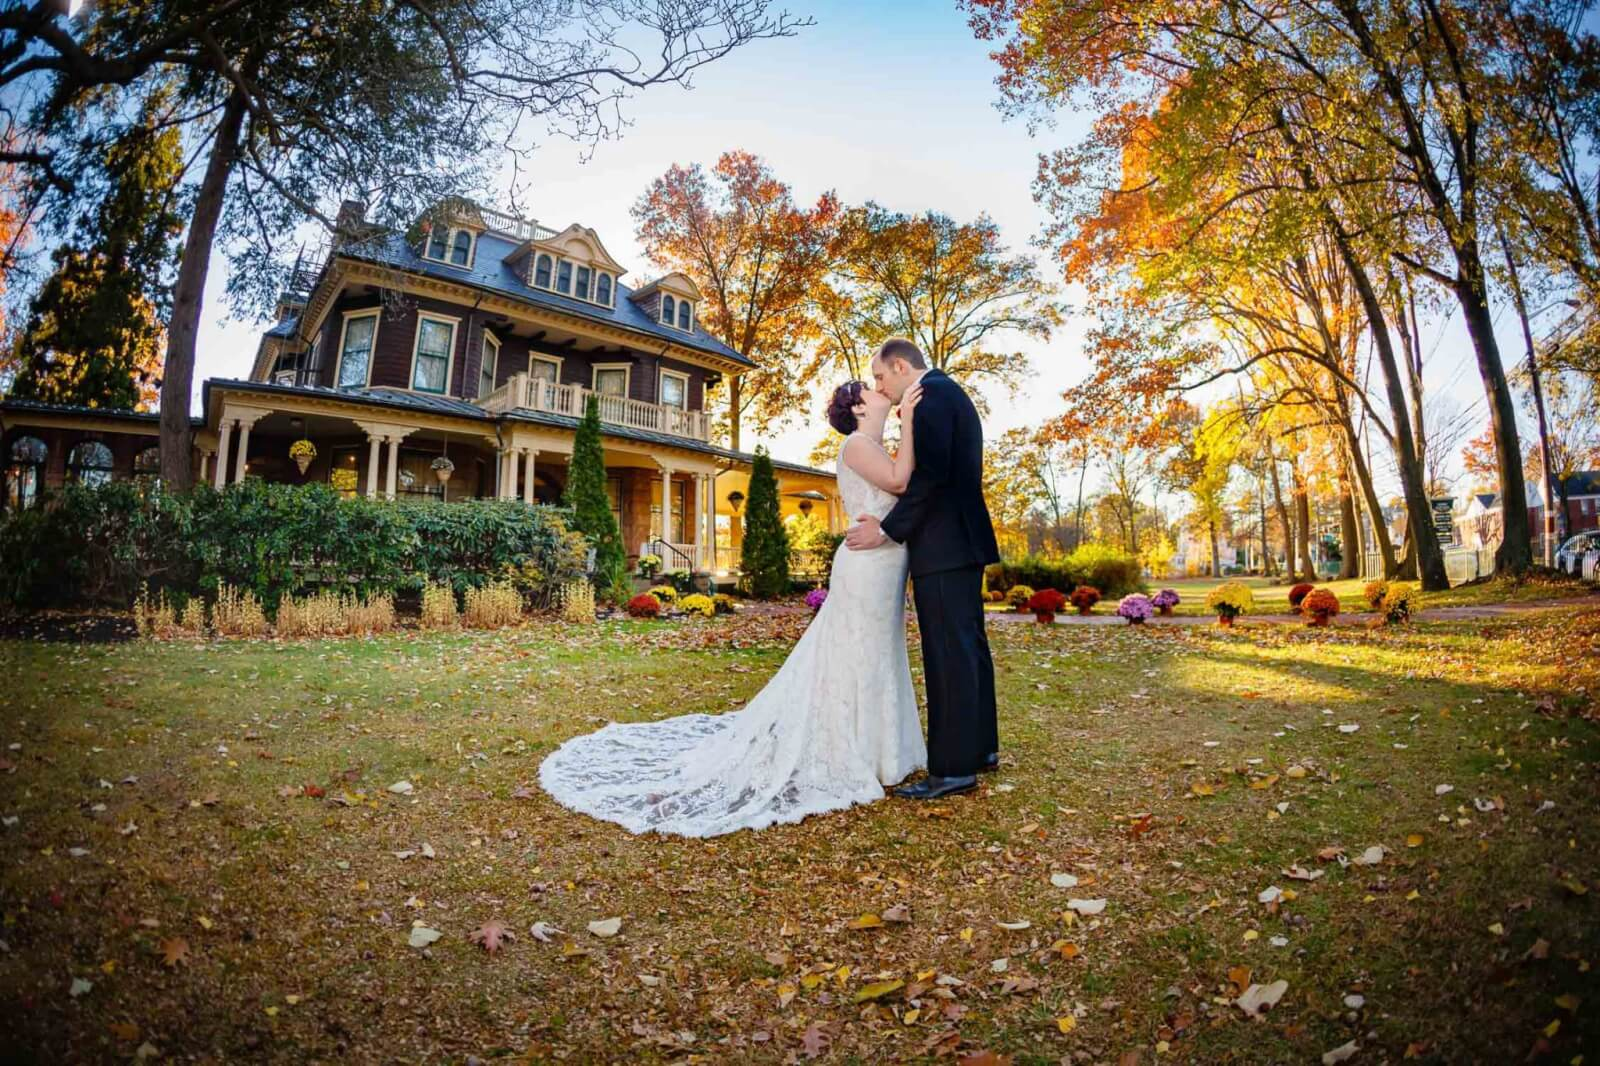 Bride and Groom dipping in front of the Oakside Mansion